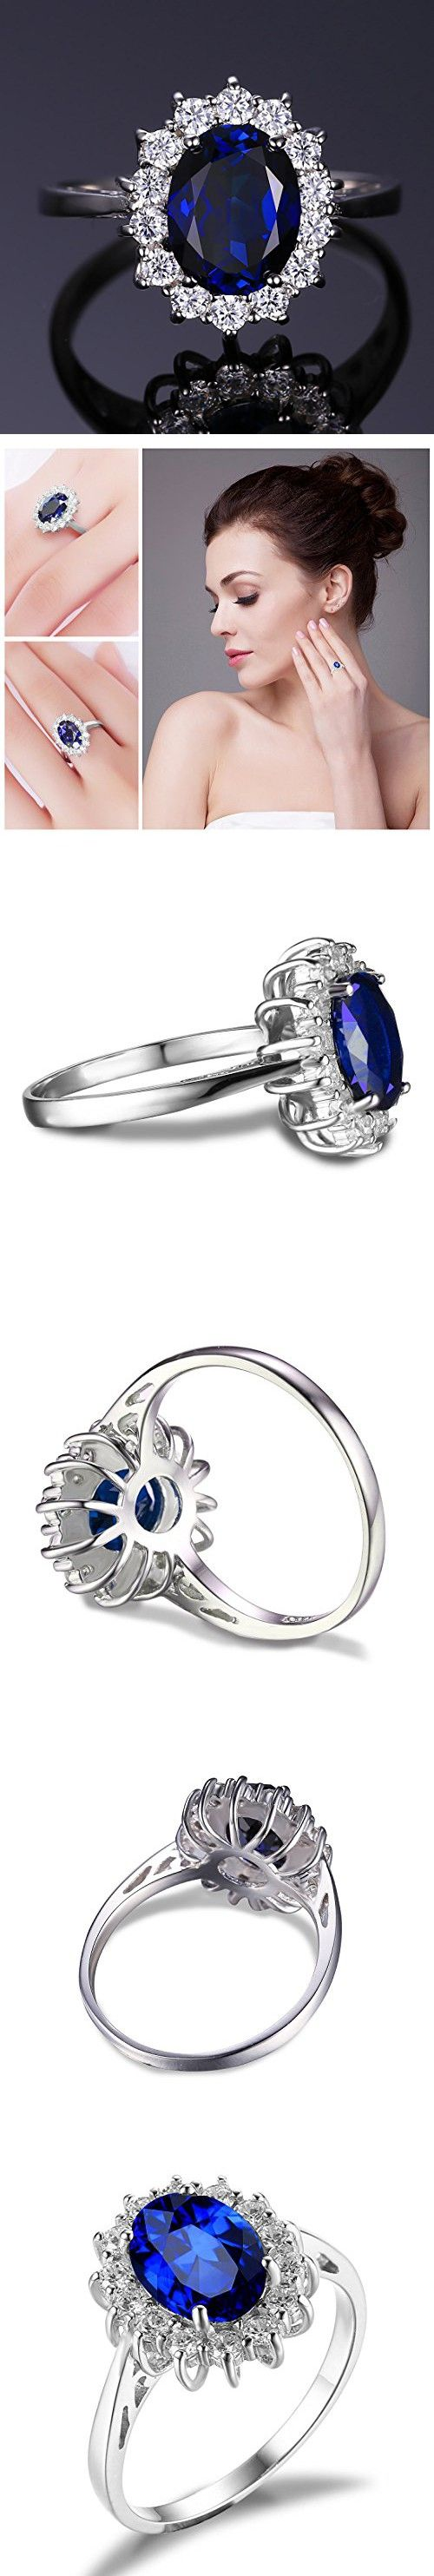 princess diana engagement ring princess kate wedding ring Jewelrypalace Solid Sterling Silver 2 1ct Created Blue Sapphire Kate Middleton s Princess Diana Engagement Ring Size